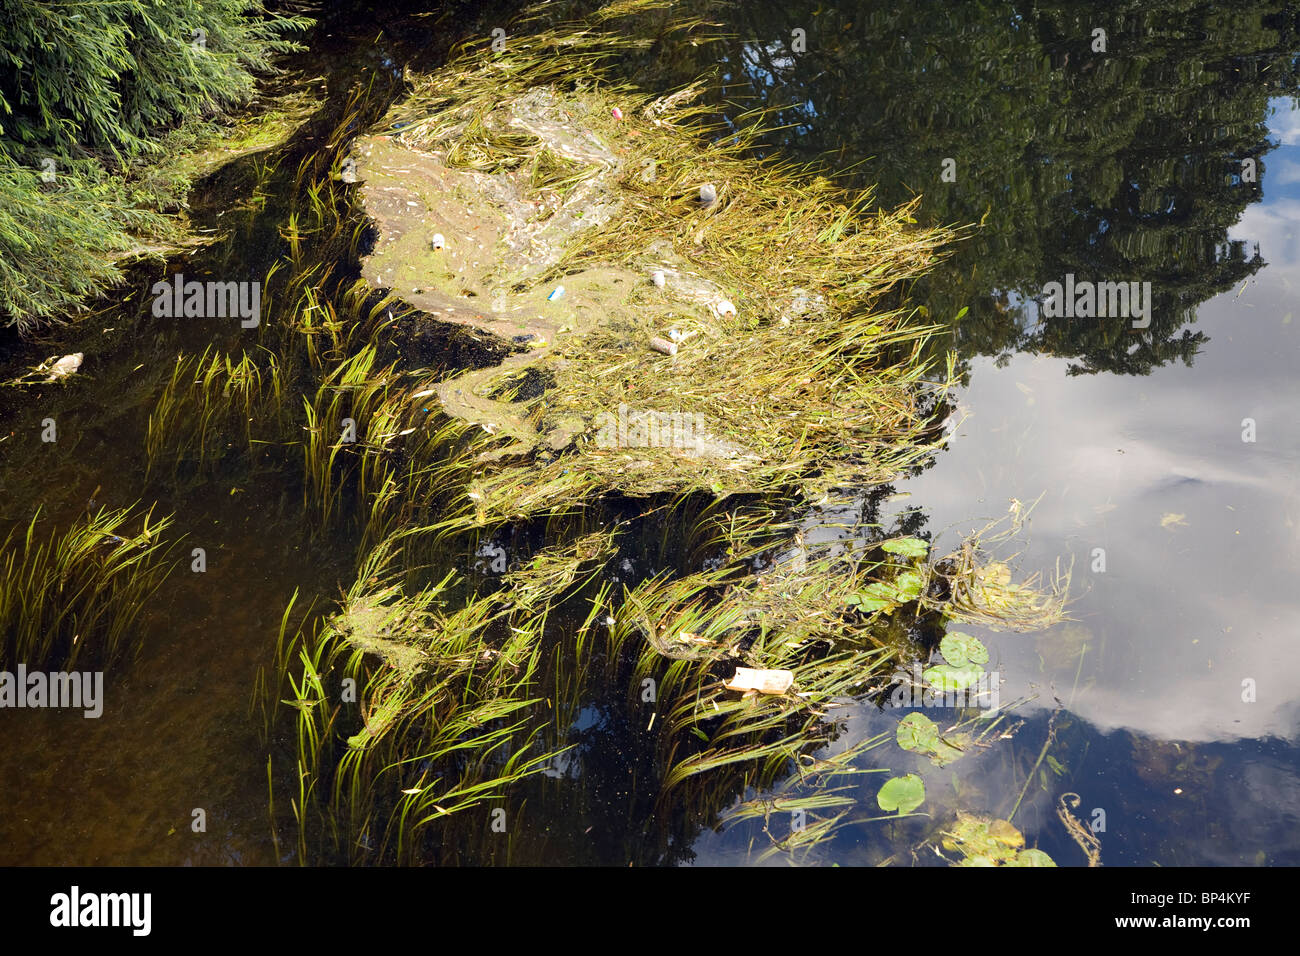 Litter river pollution in weeds River Wensum, Norwich, England - Stock Image